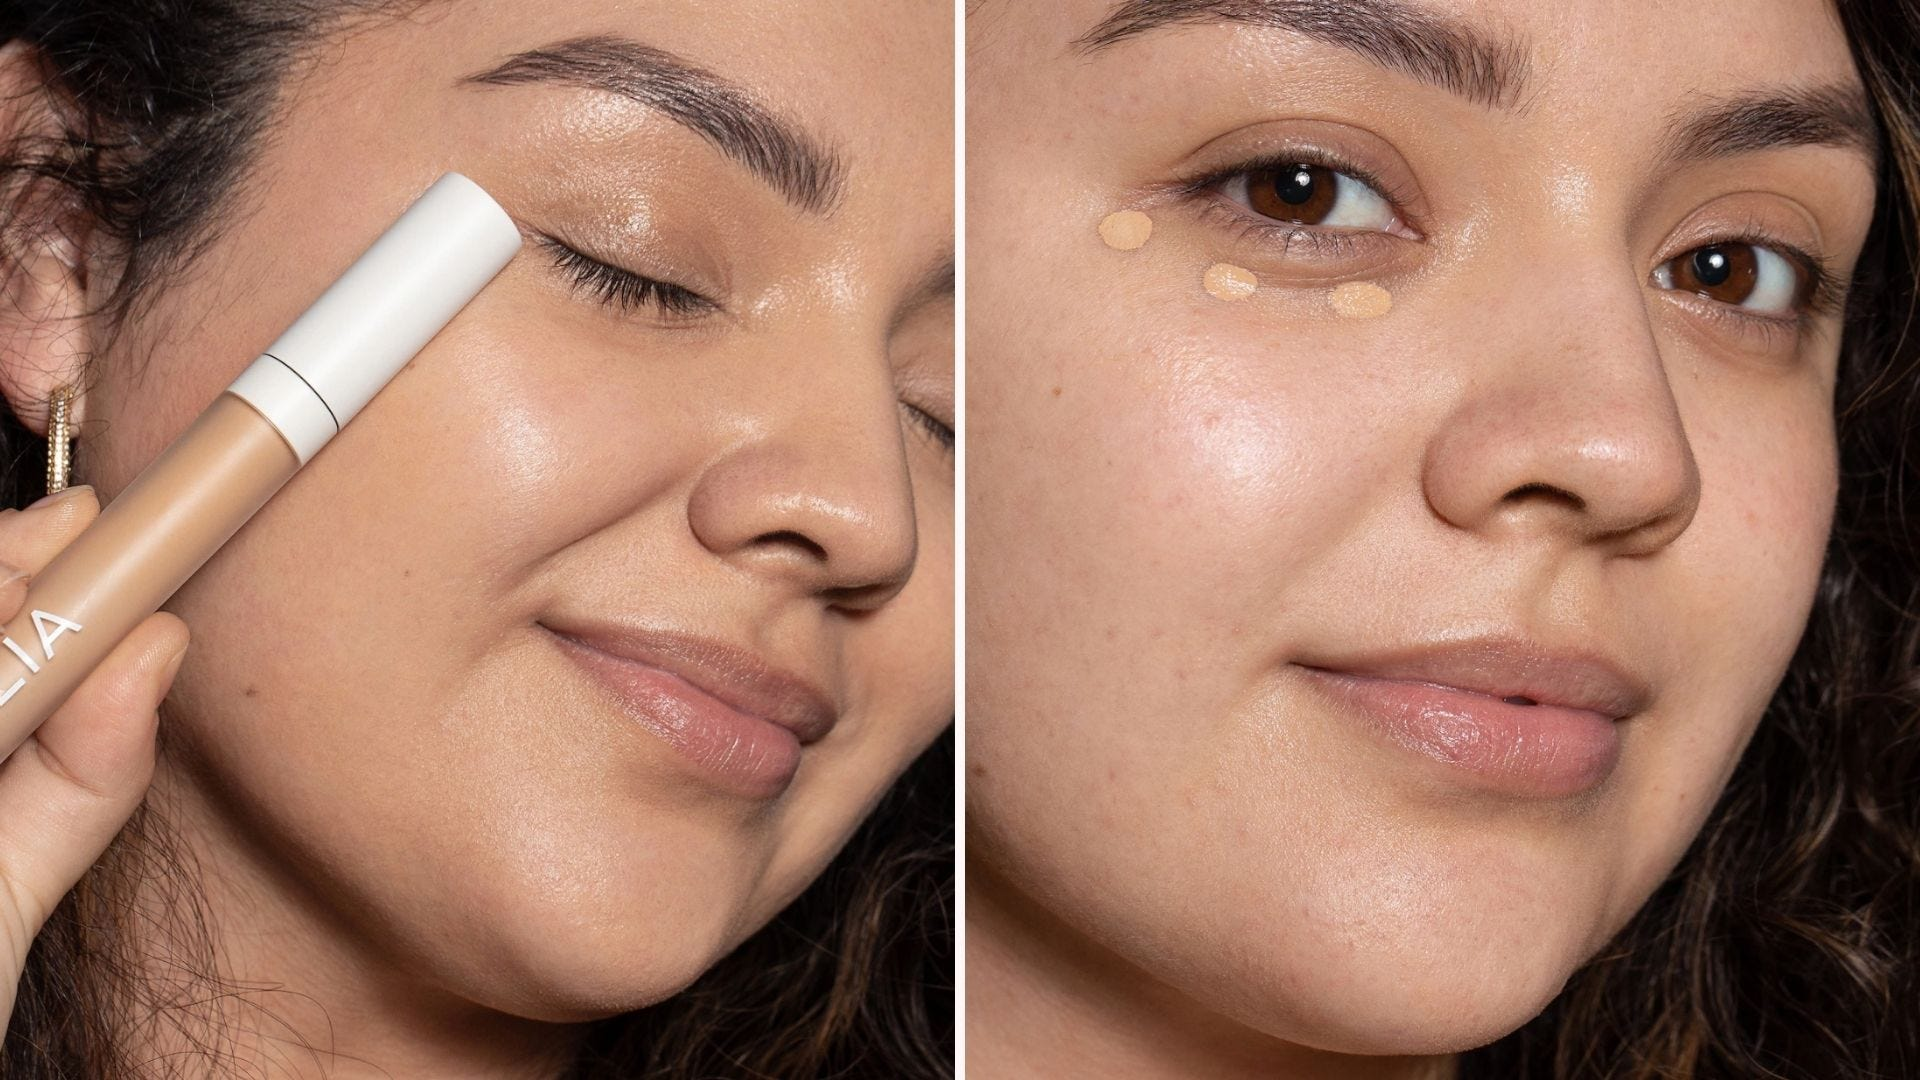 On the left, a woman holding ILIA serum concealer, and on the right, the same woman with the concealer dotted under her eyes.